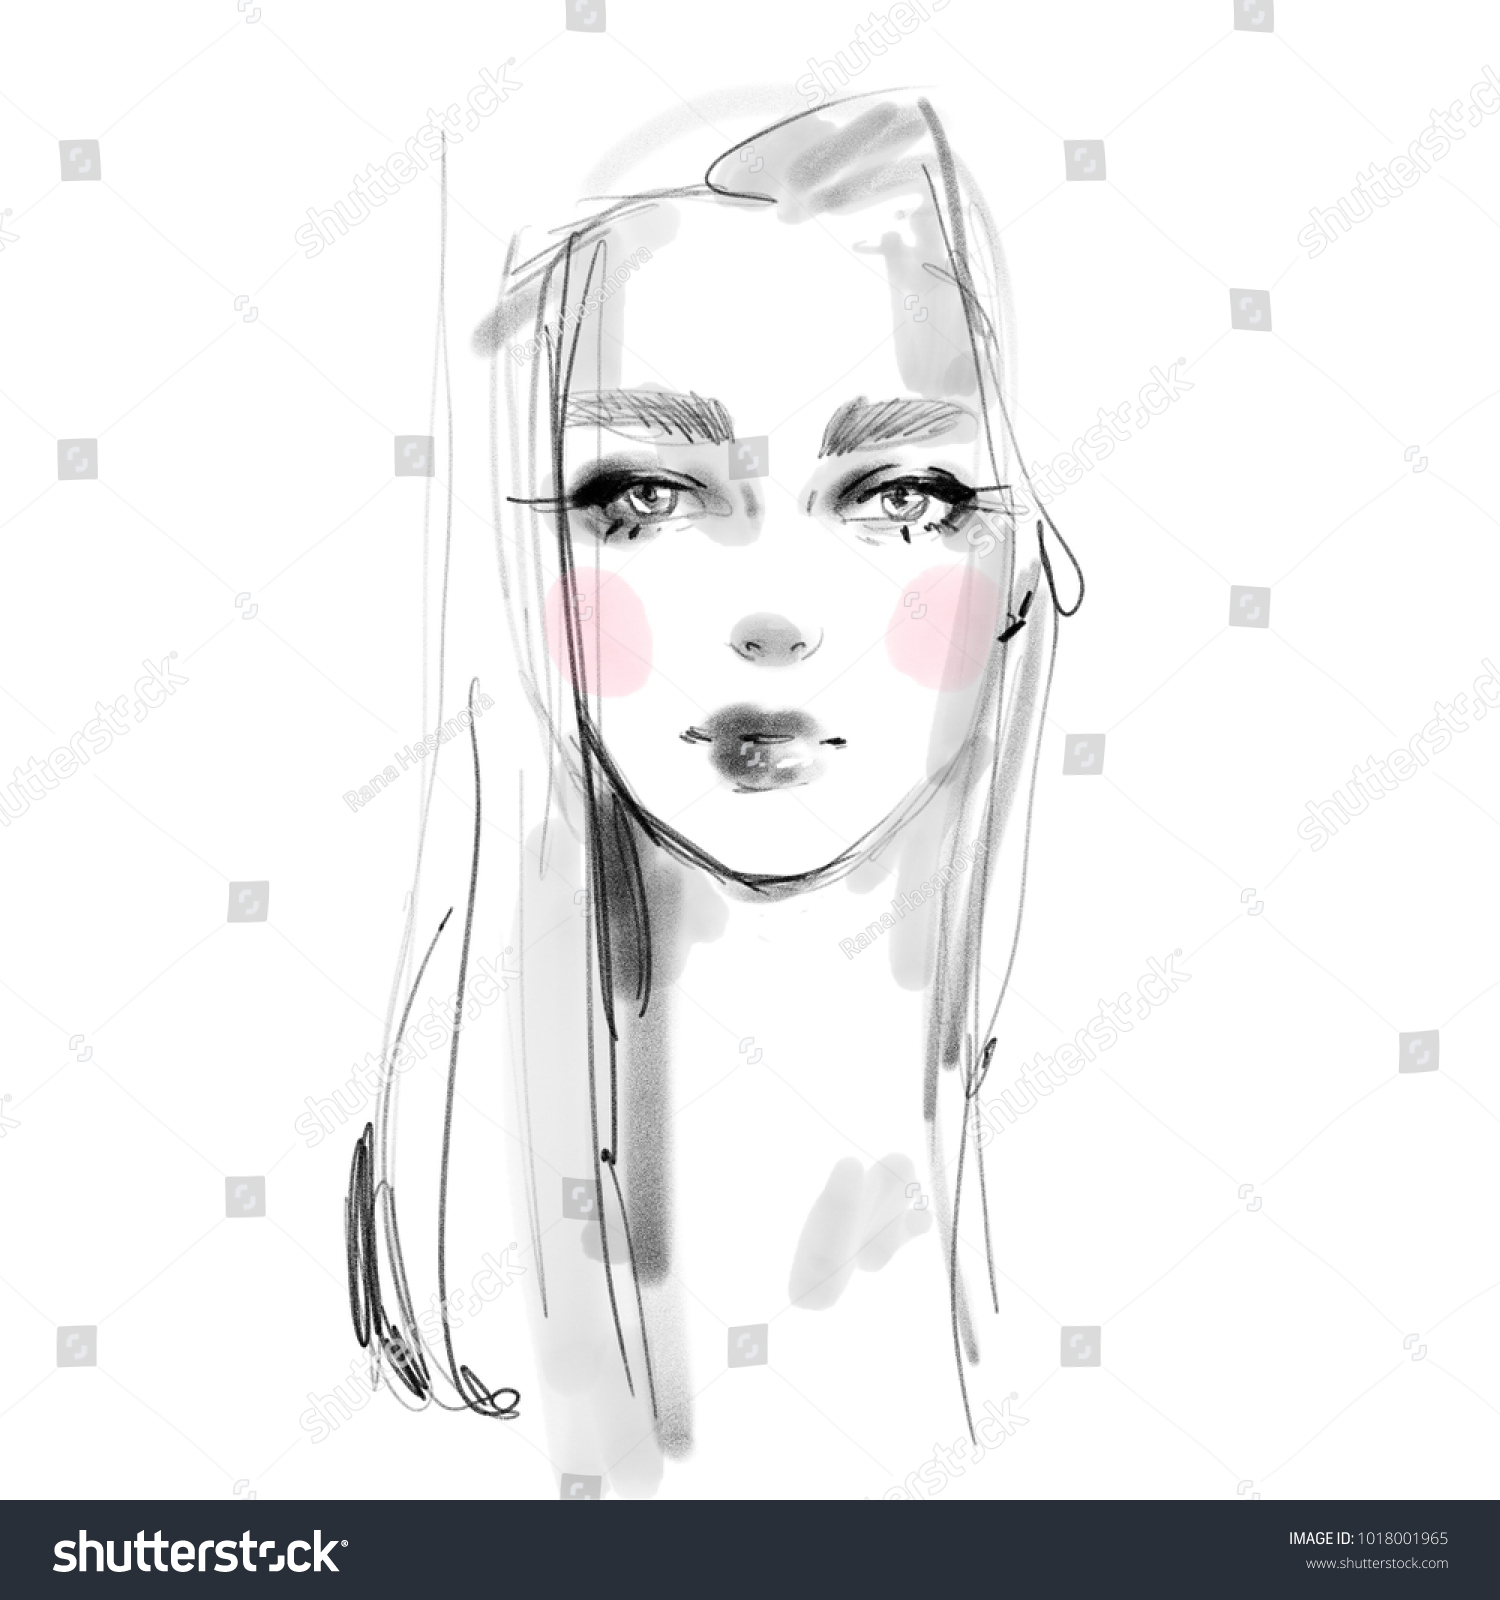 Young girl face with pink blush cheeks black and white pencil sketch portrait beautiful woman